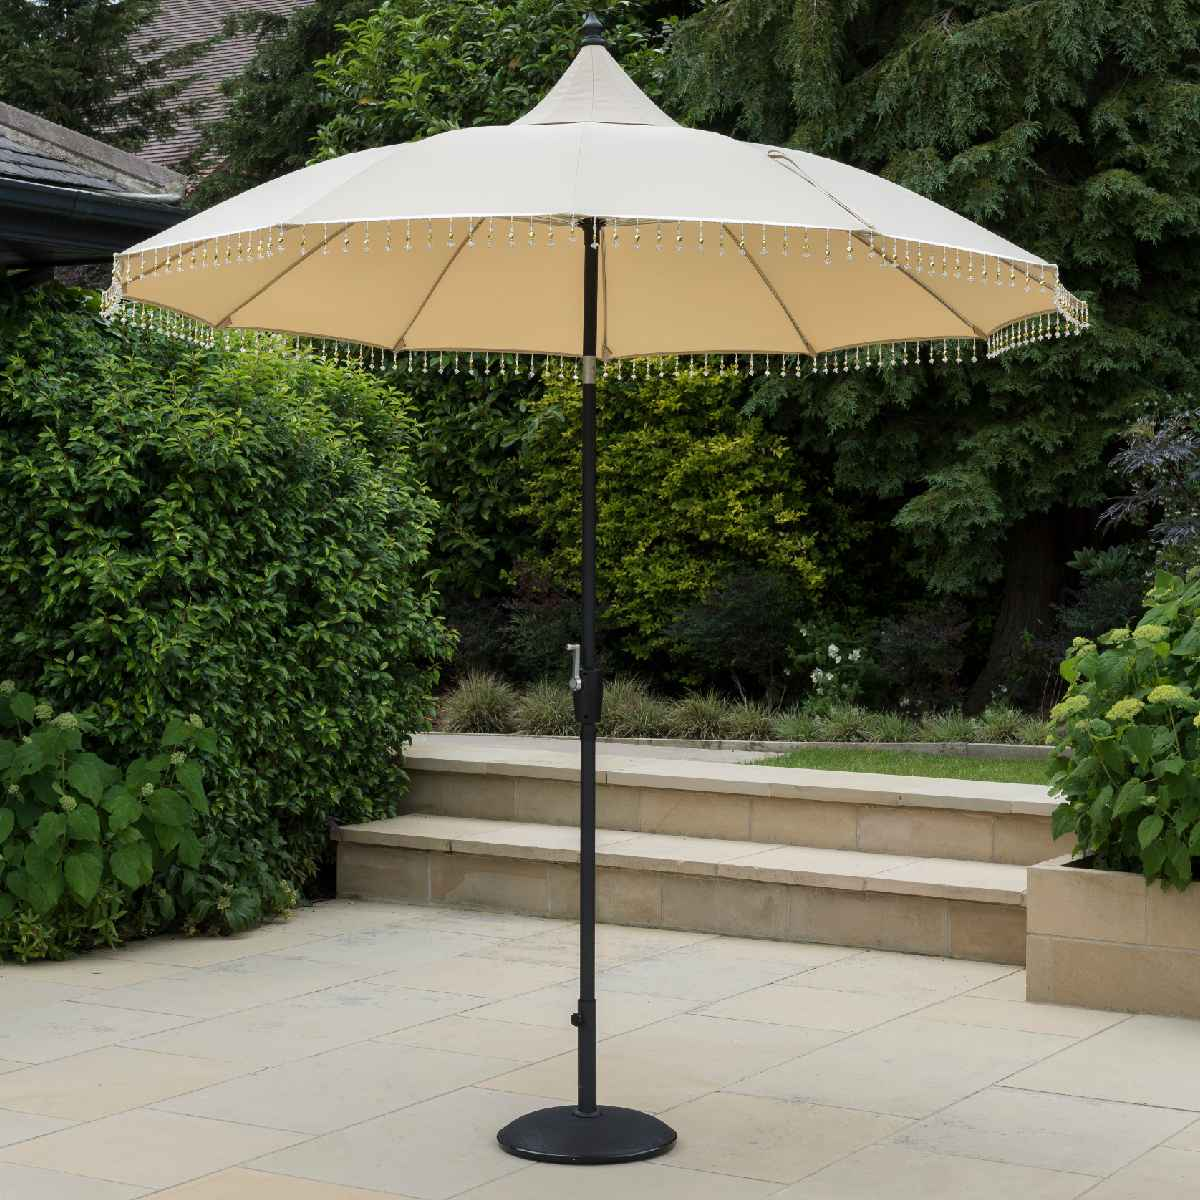 Garden Must Haves Carrousel 2.7m Parasol (base not included) - Cream